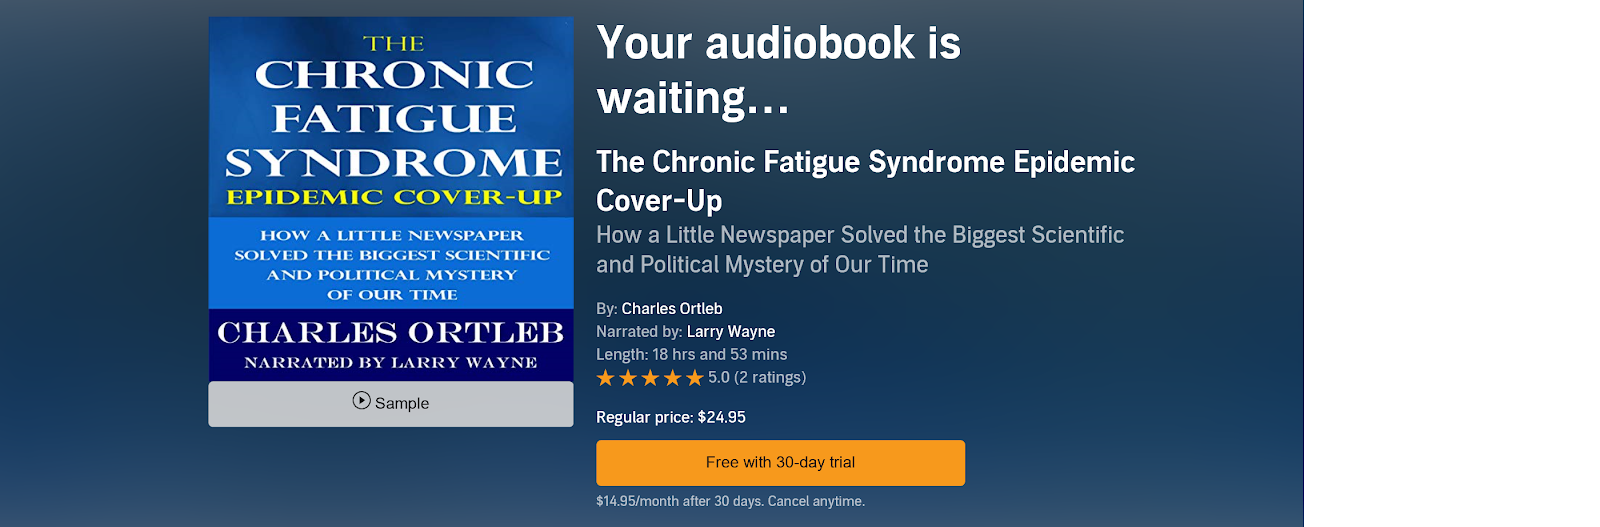 Audible CFS book